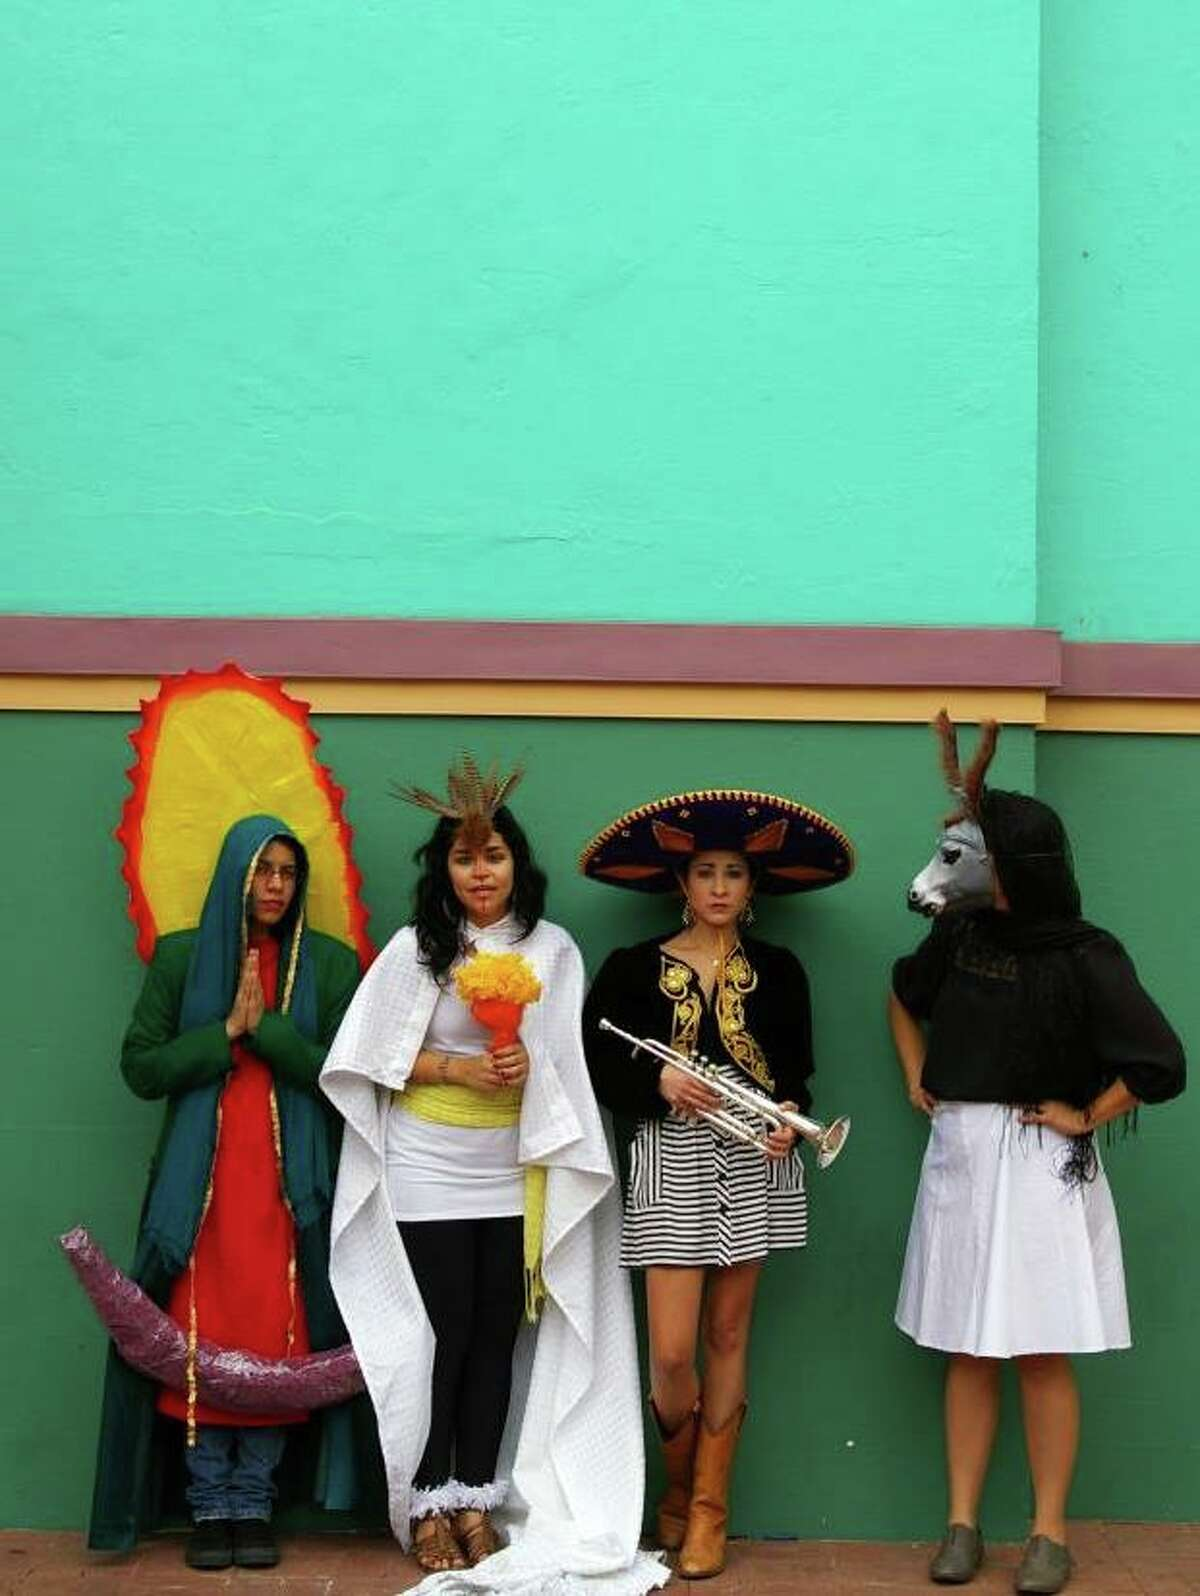 Members of the arts collective Más Rudas are, from left, Sarah Castillo, Mari Hernandez, Kristin Gamez, Ruth Buentello.